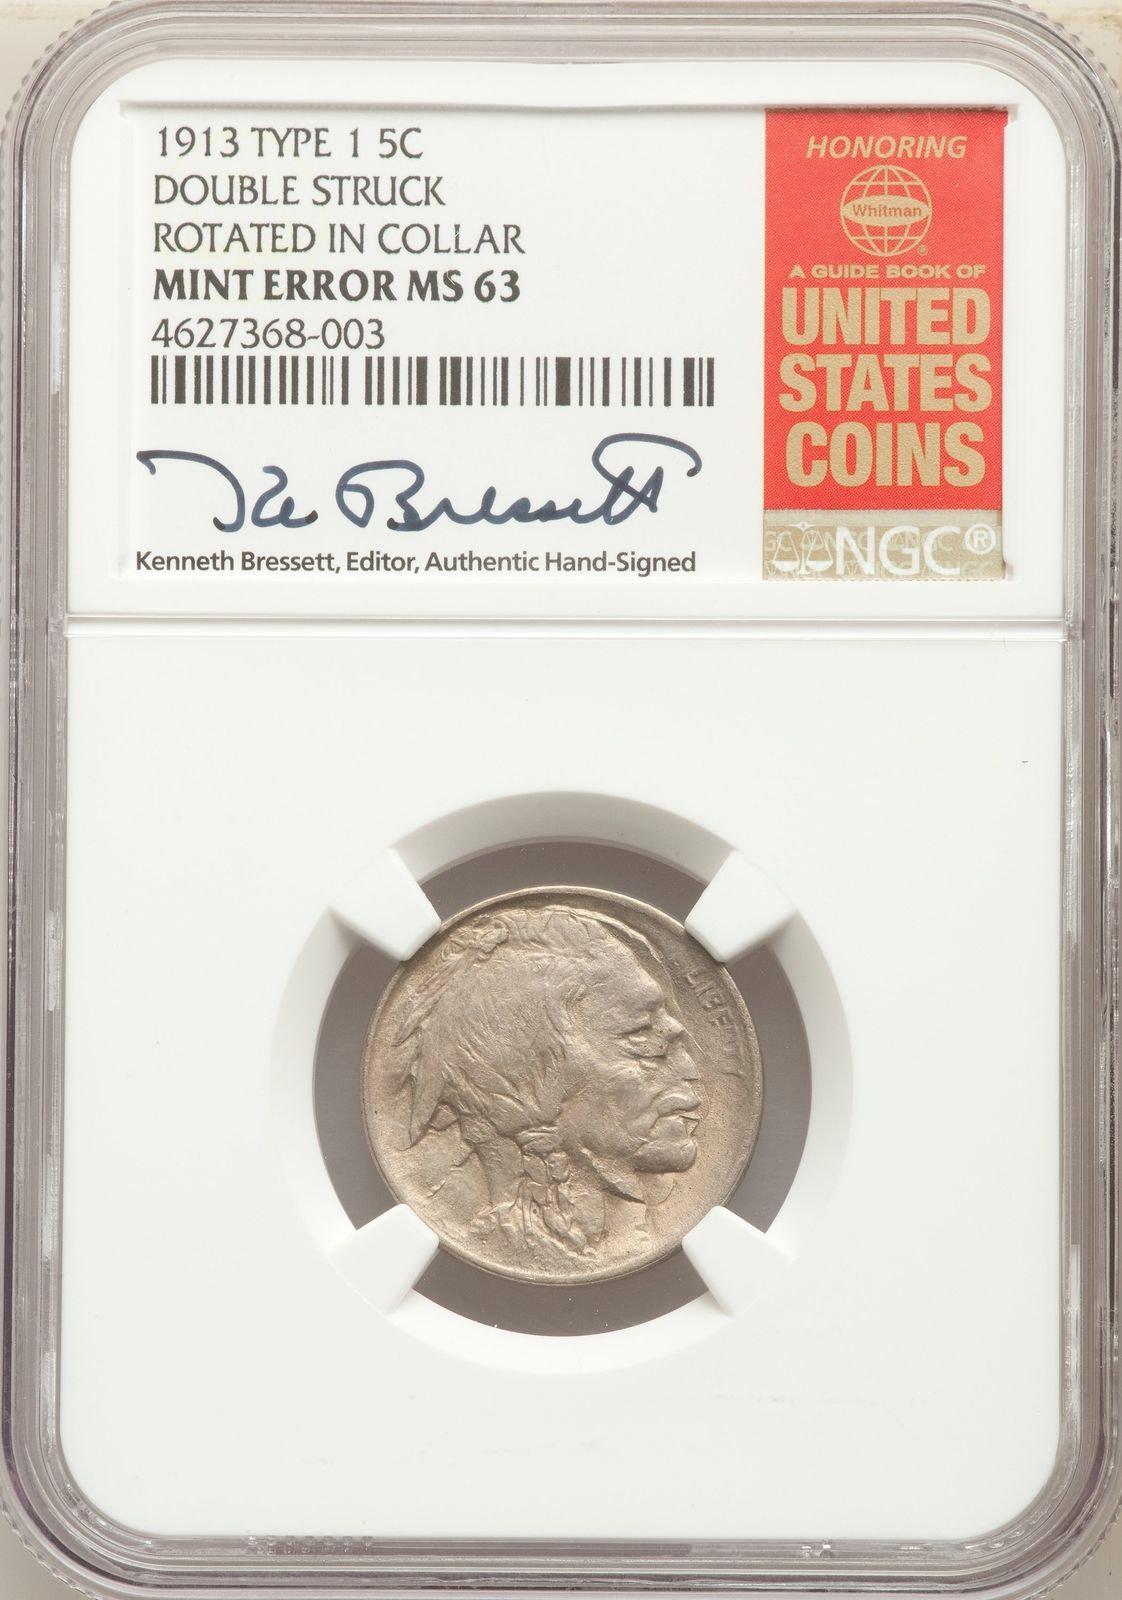 VERY Interesting 1913 type one buffalo nickel for sale on